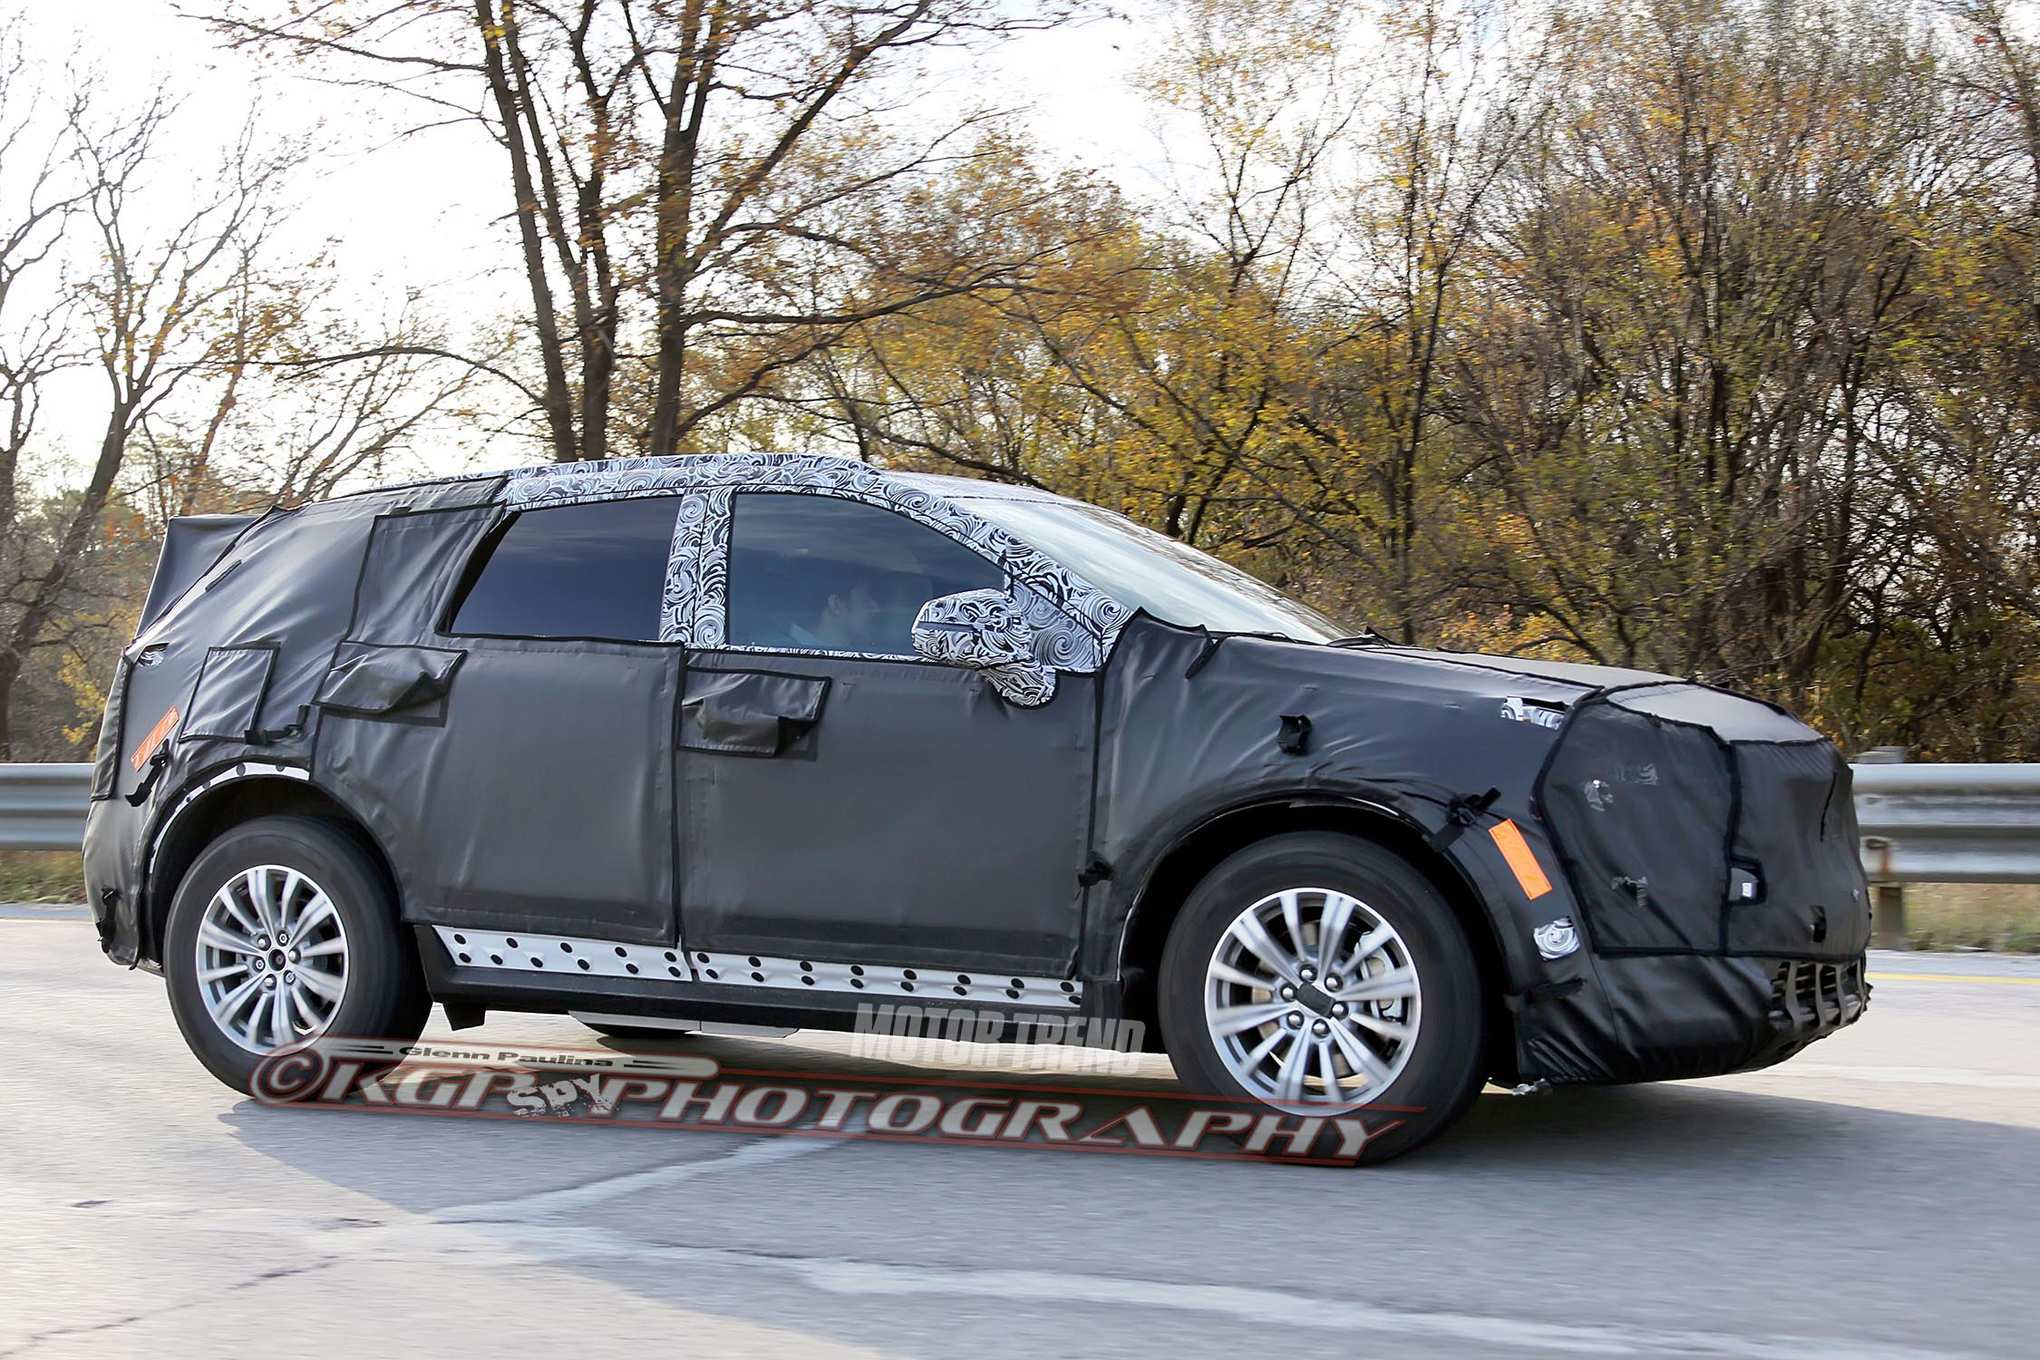 61 All New Spy Shots Cadillac Xt5 Spy Shoot